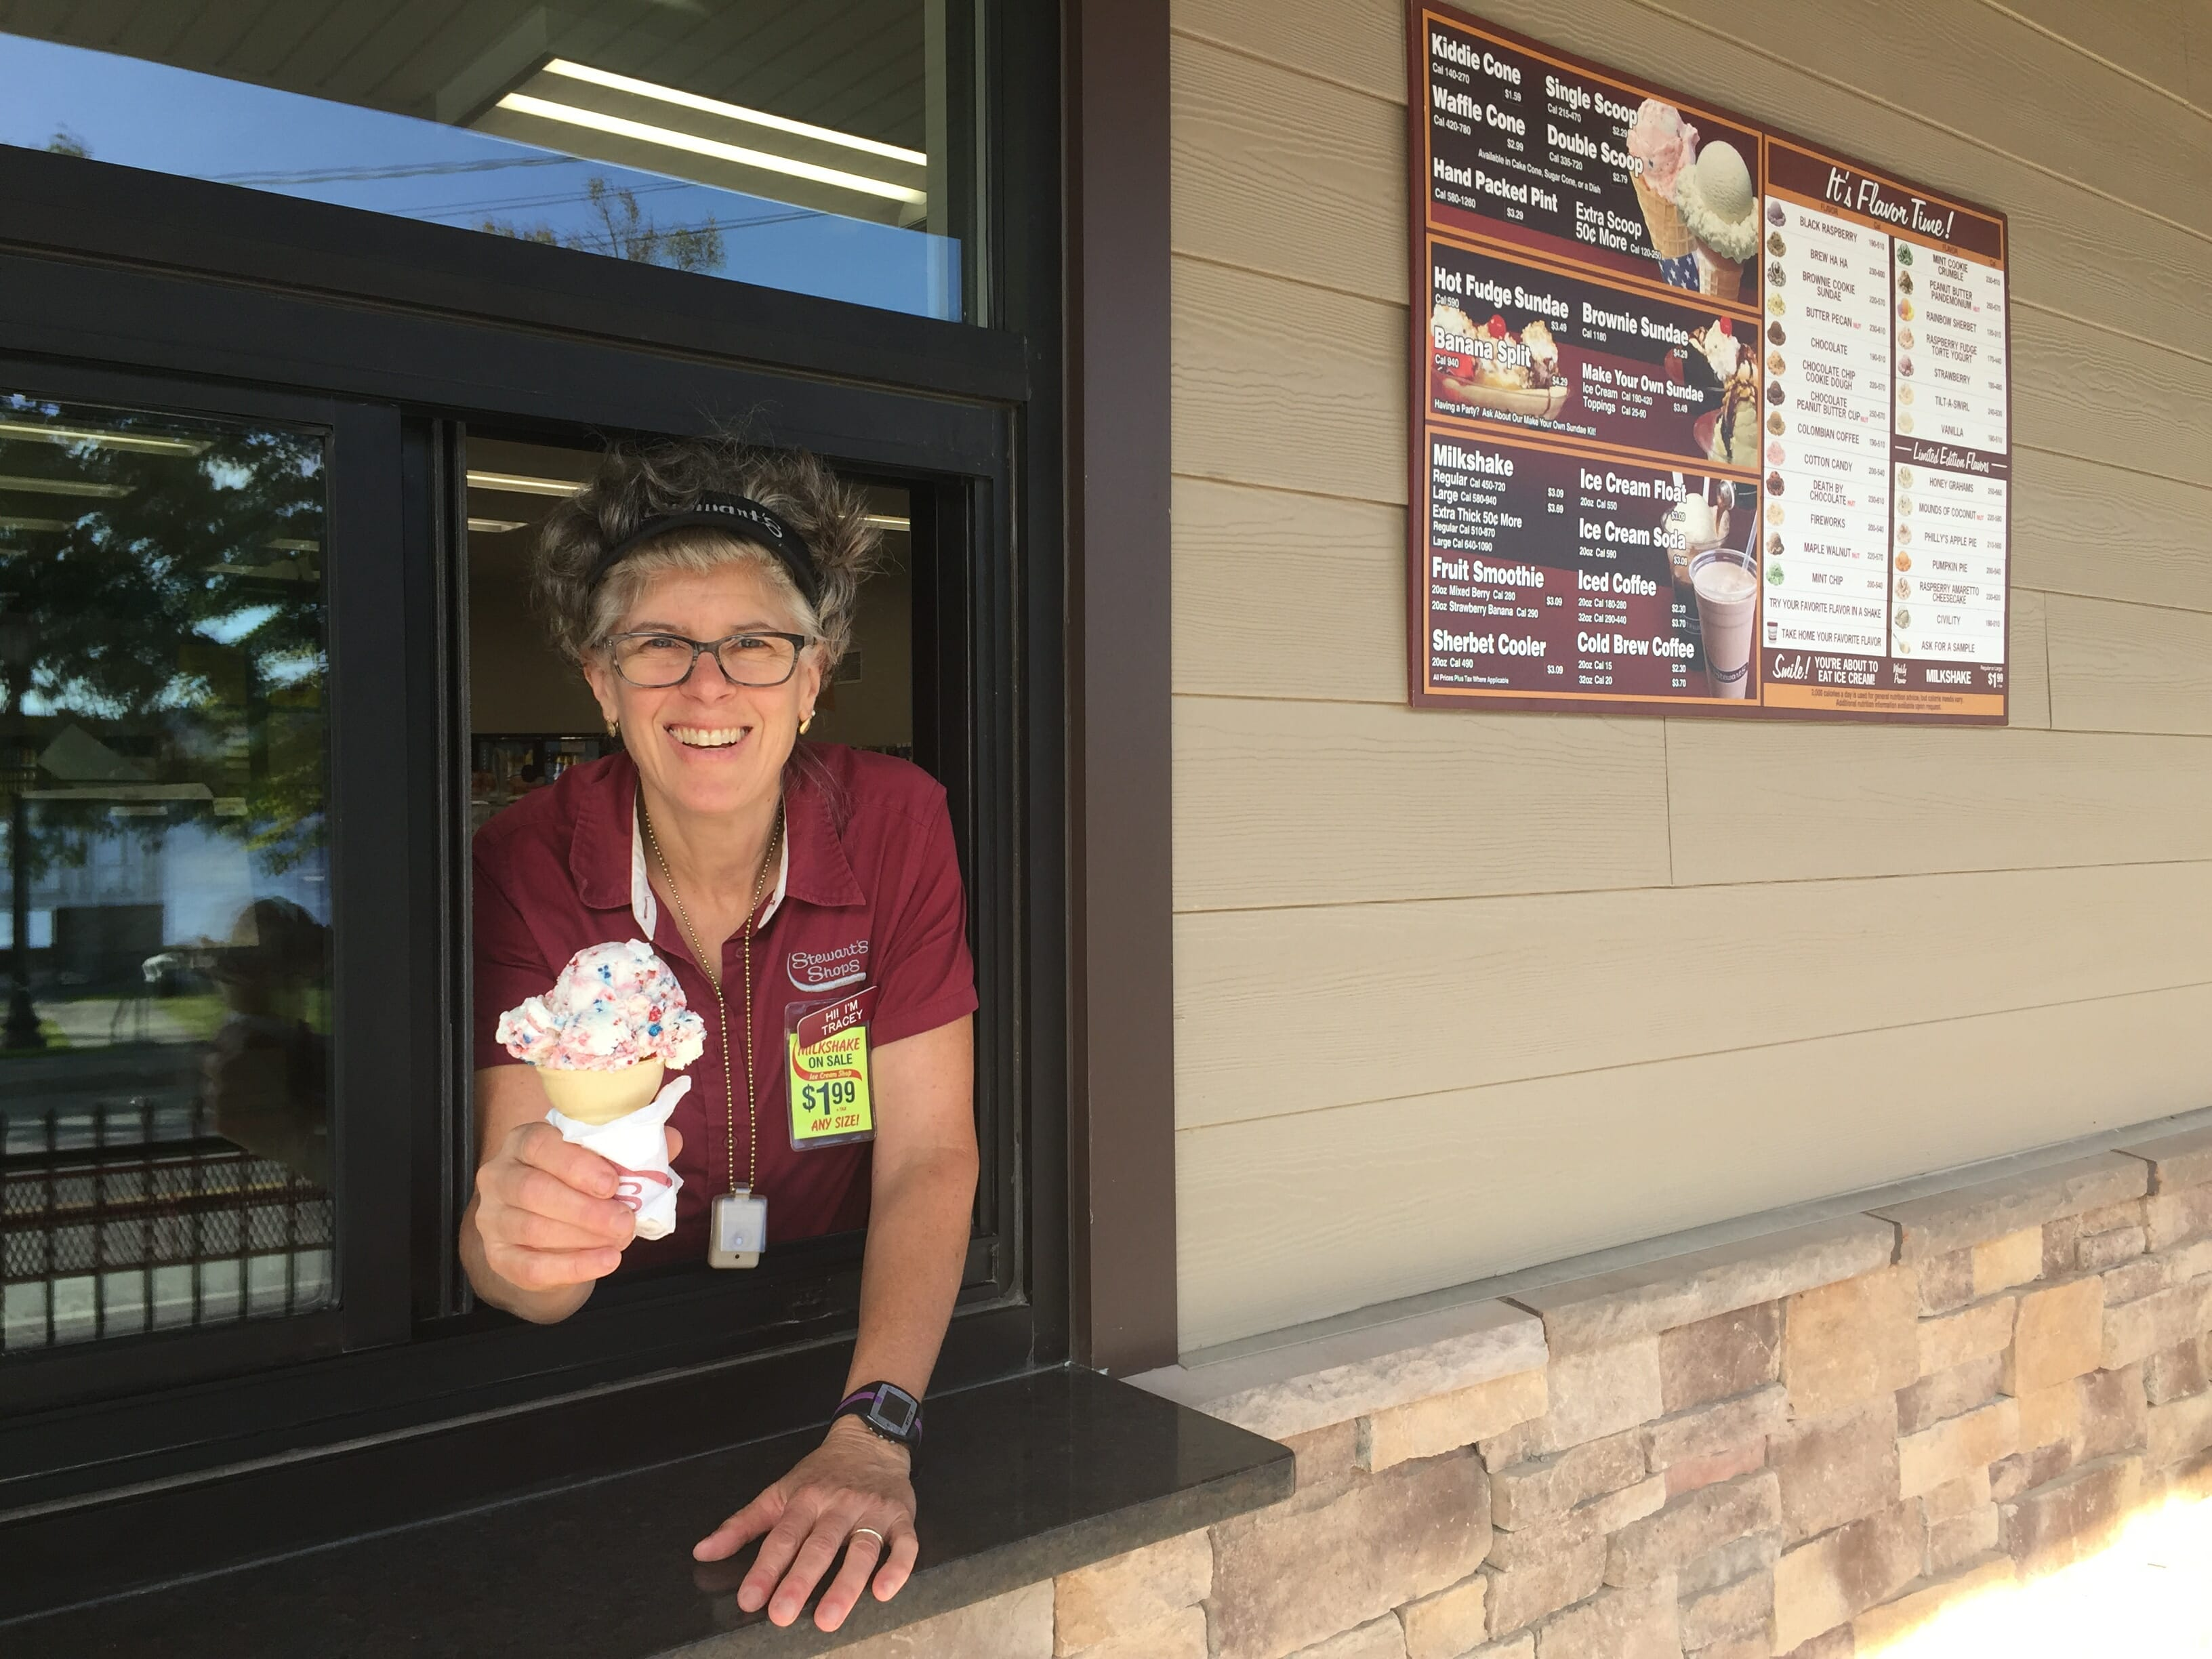 A unique ice cream window at the Schroon Lake Shop